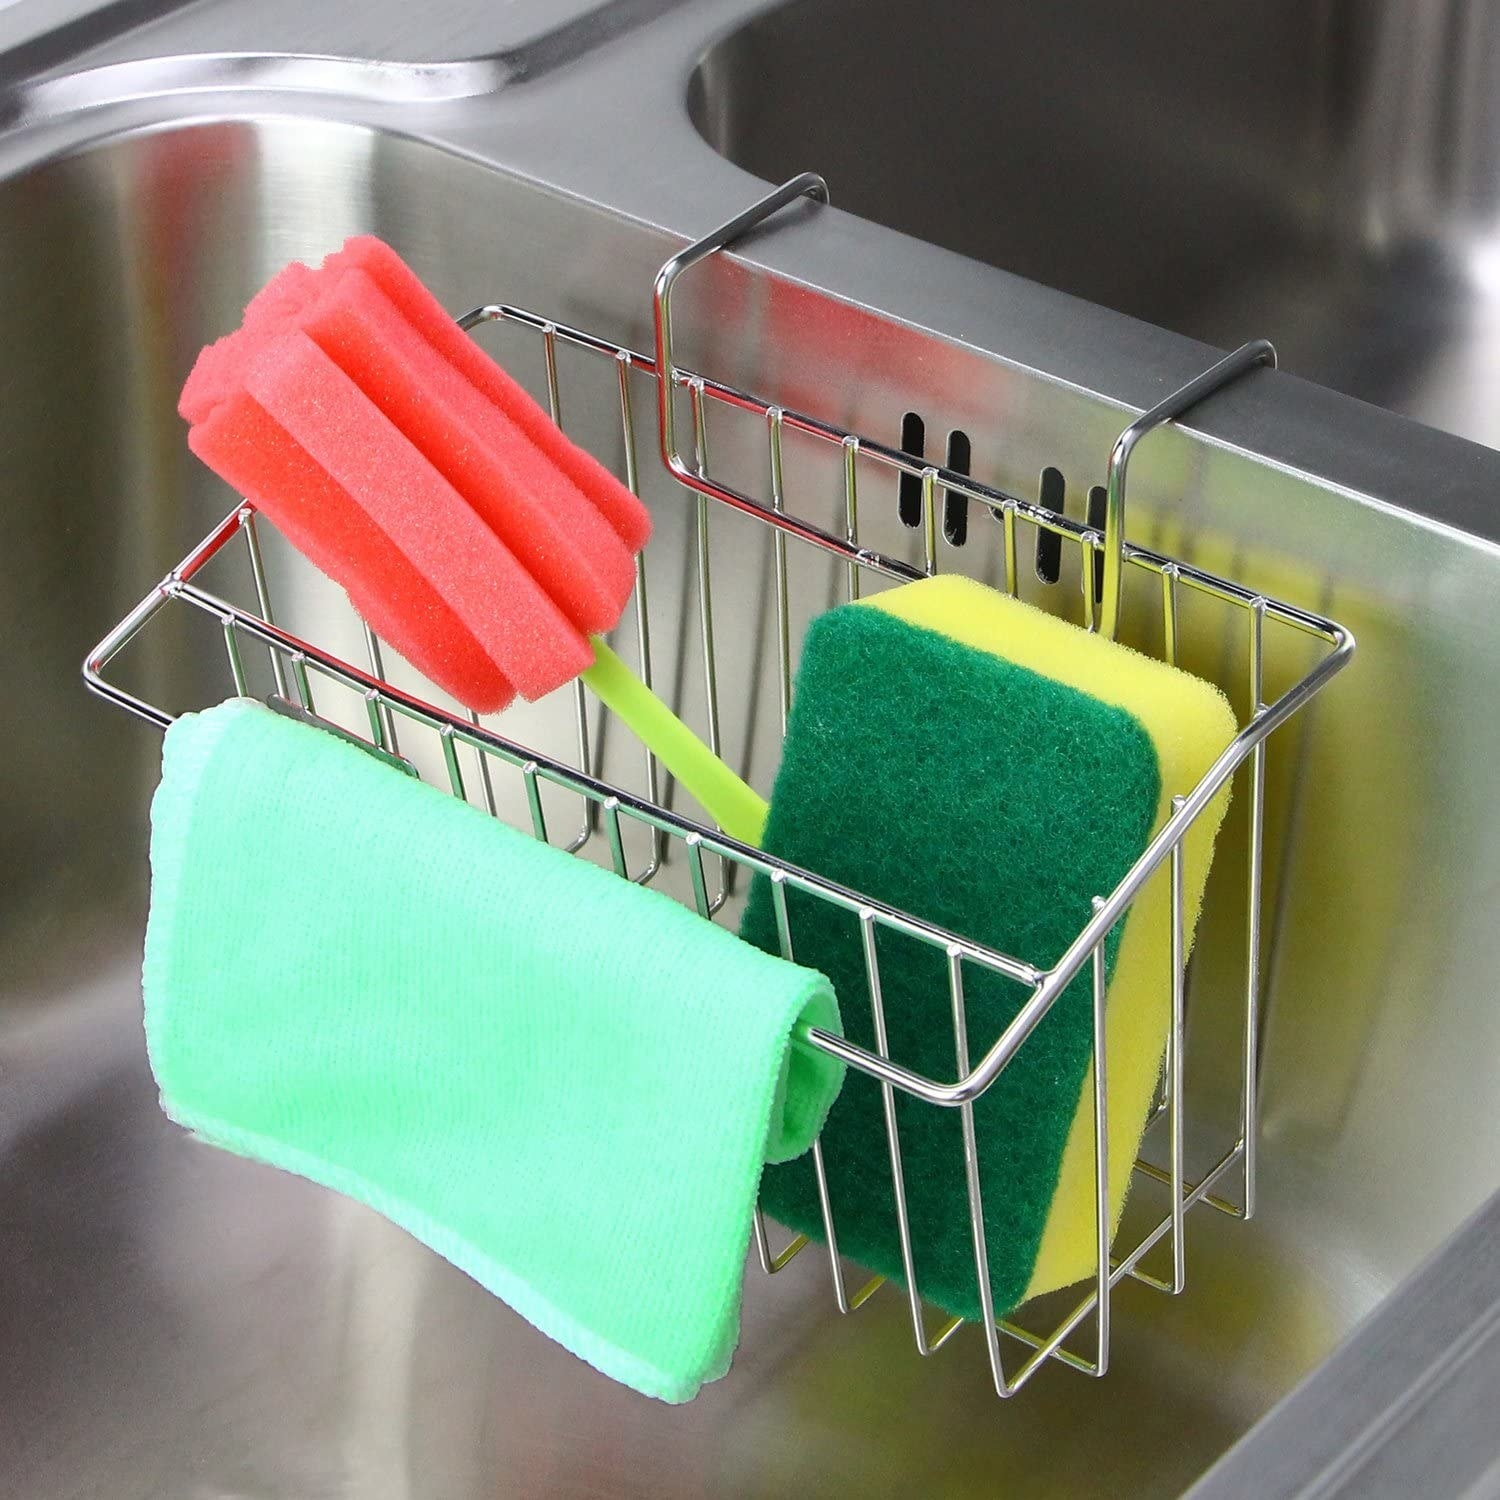 A wire mesh kitchen sink caddy hanging on the sink and holding dishwashing brushes and a sponge